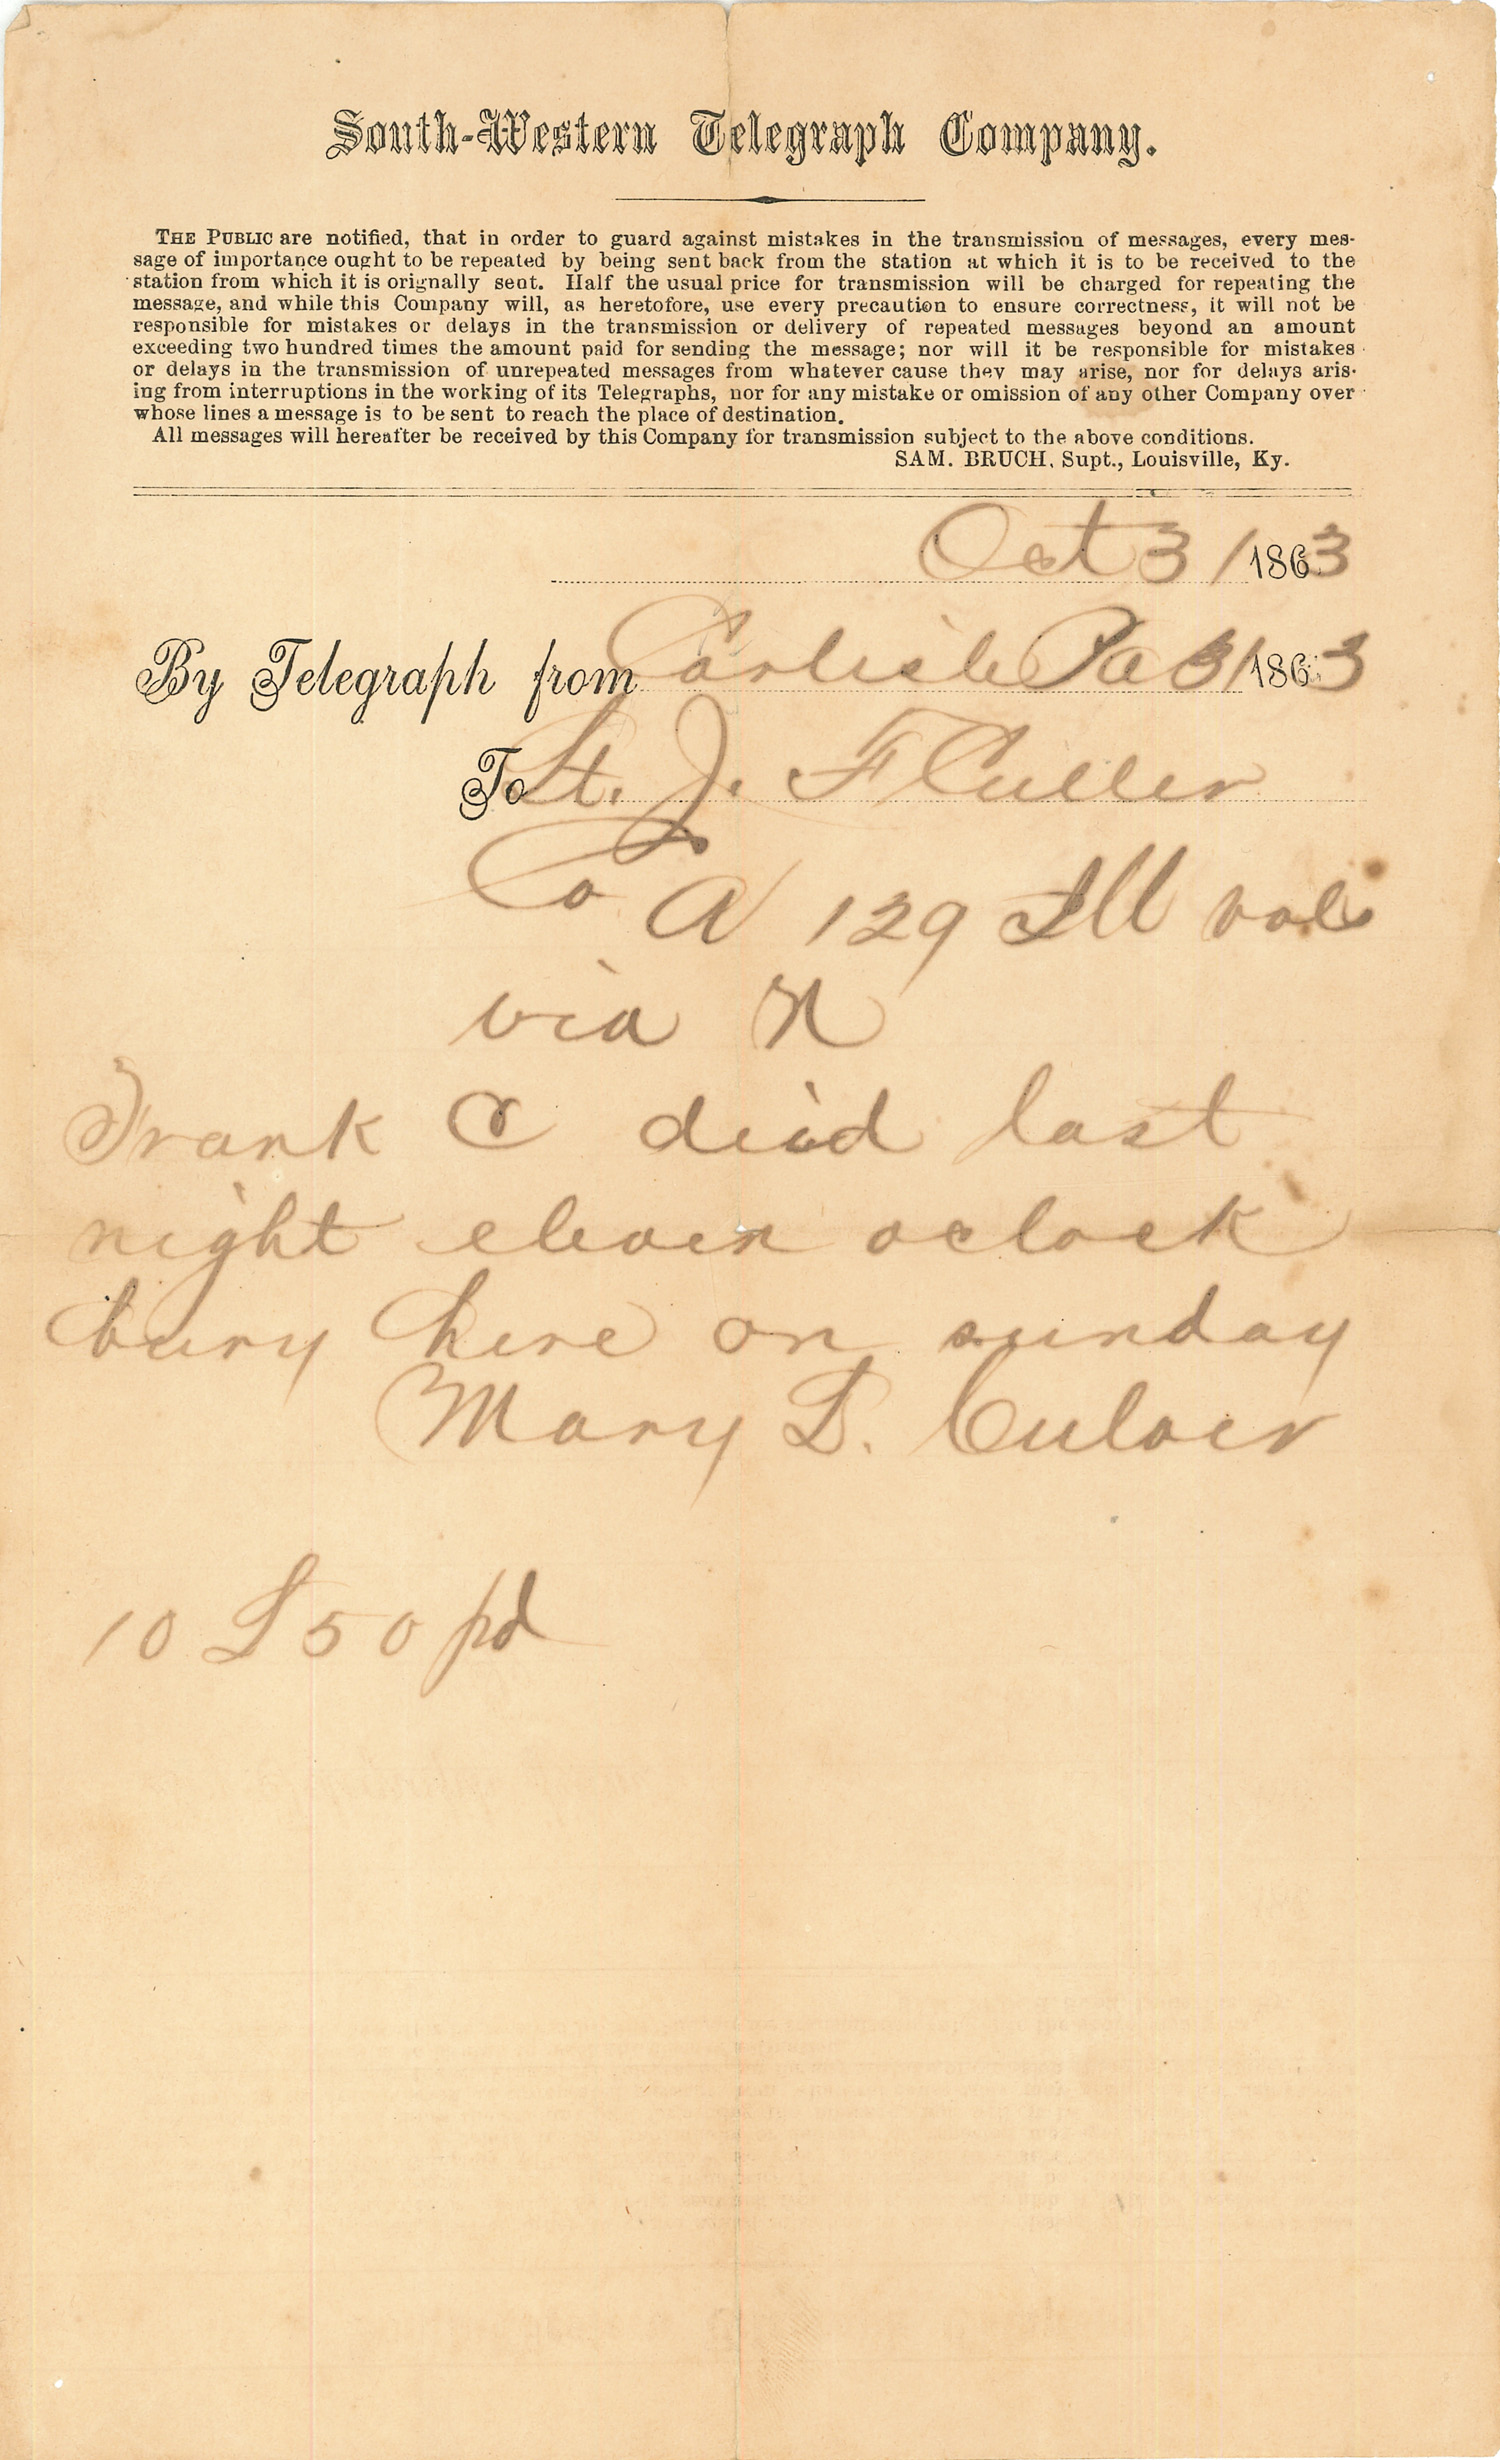 Joseph Culver Letter, October 31, 1863, Page 1 Telegram